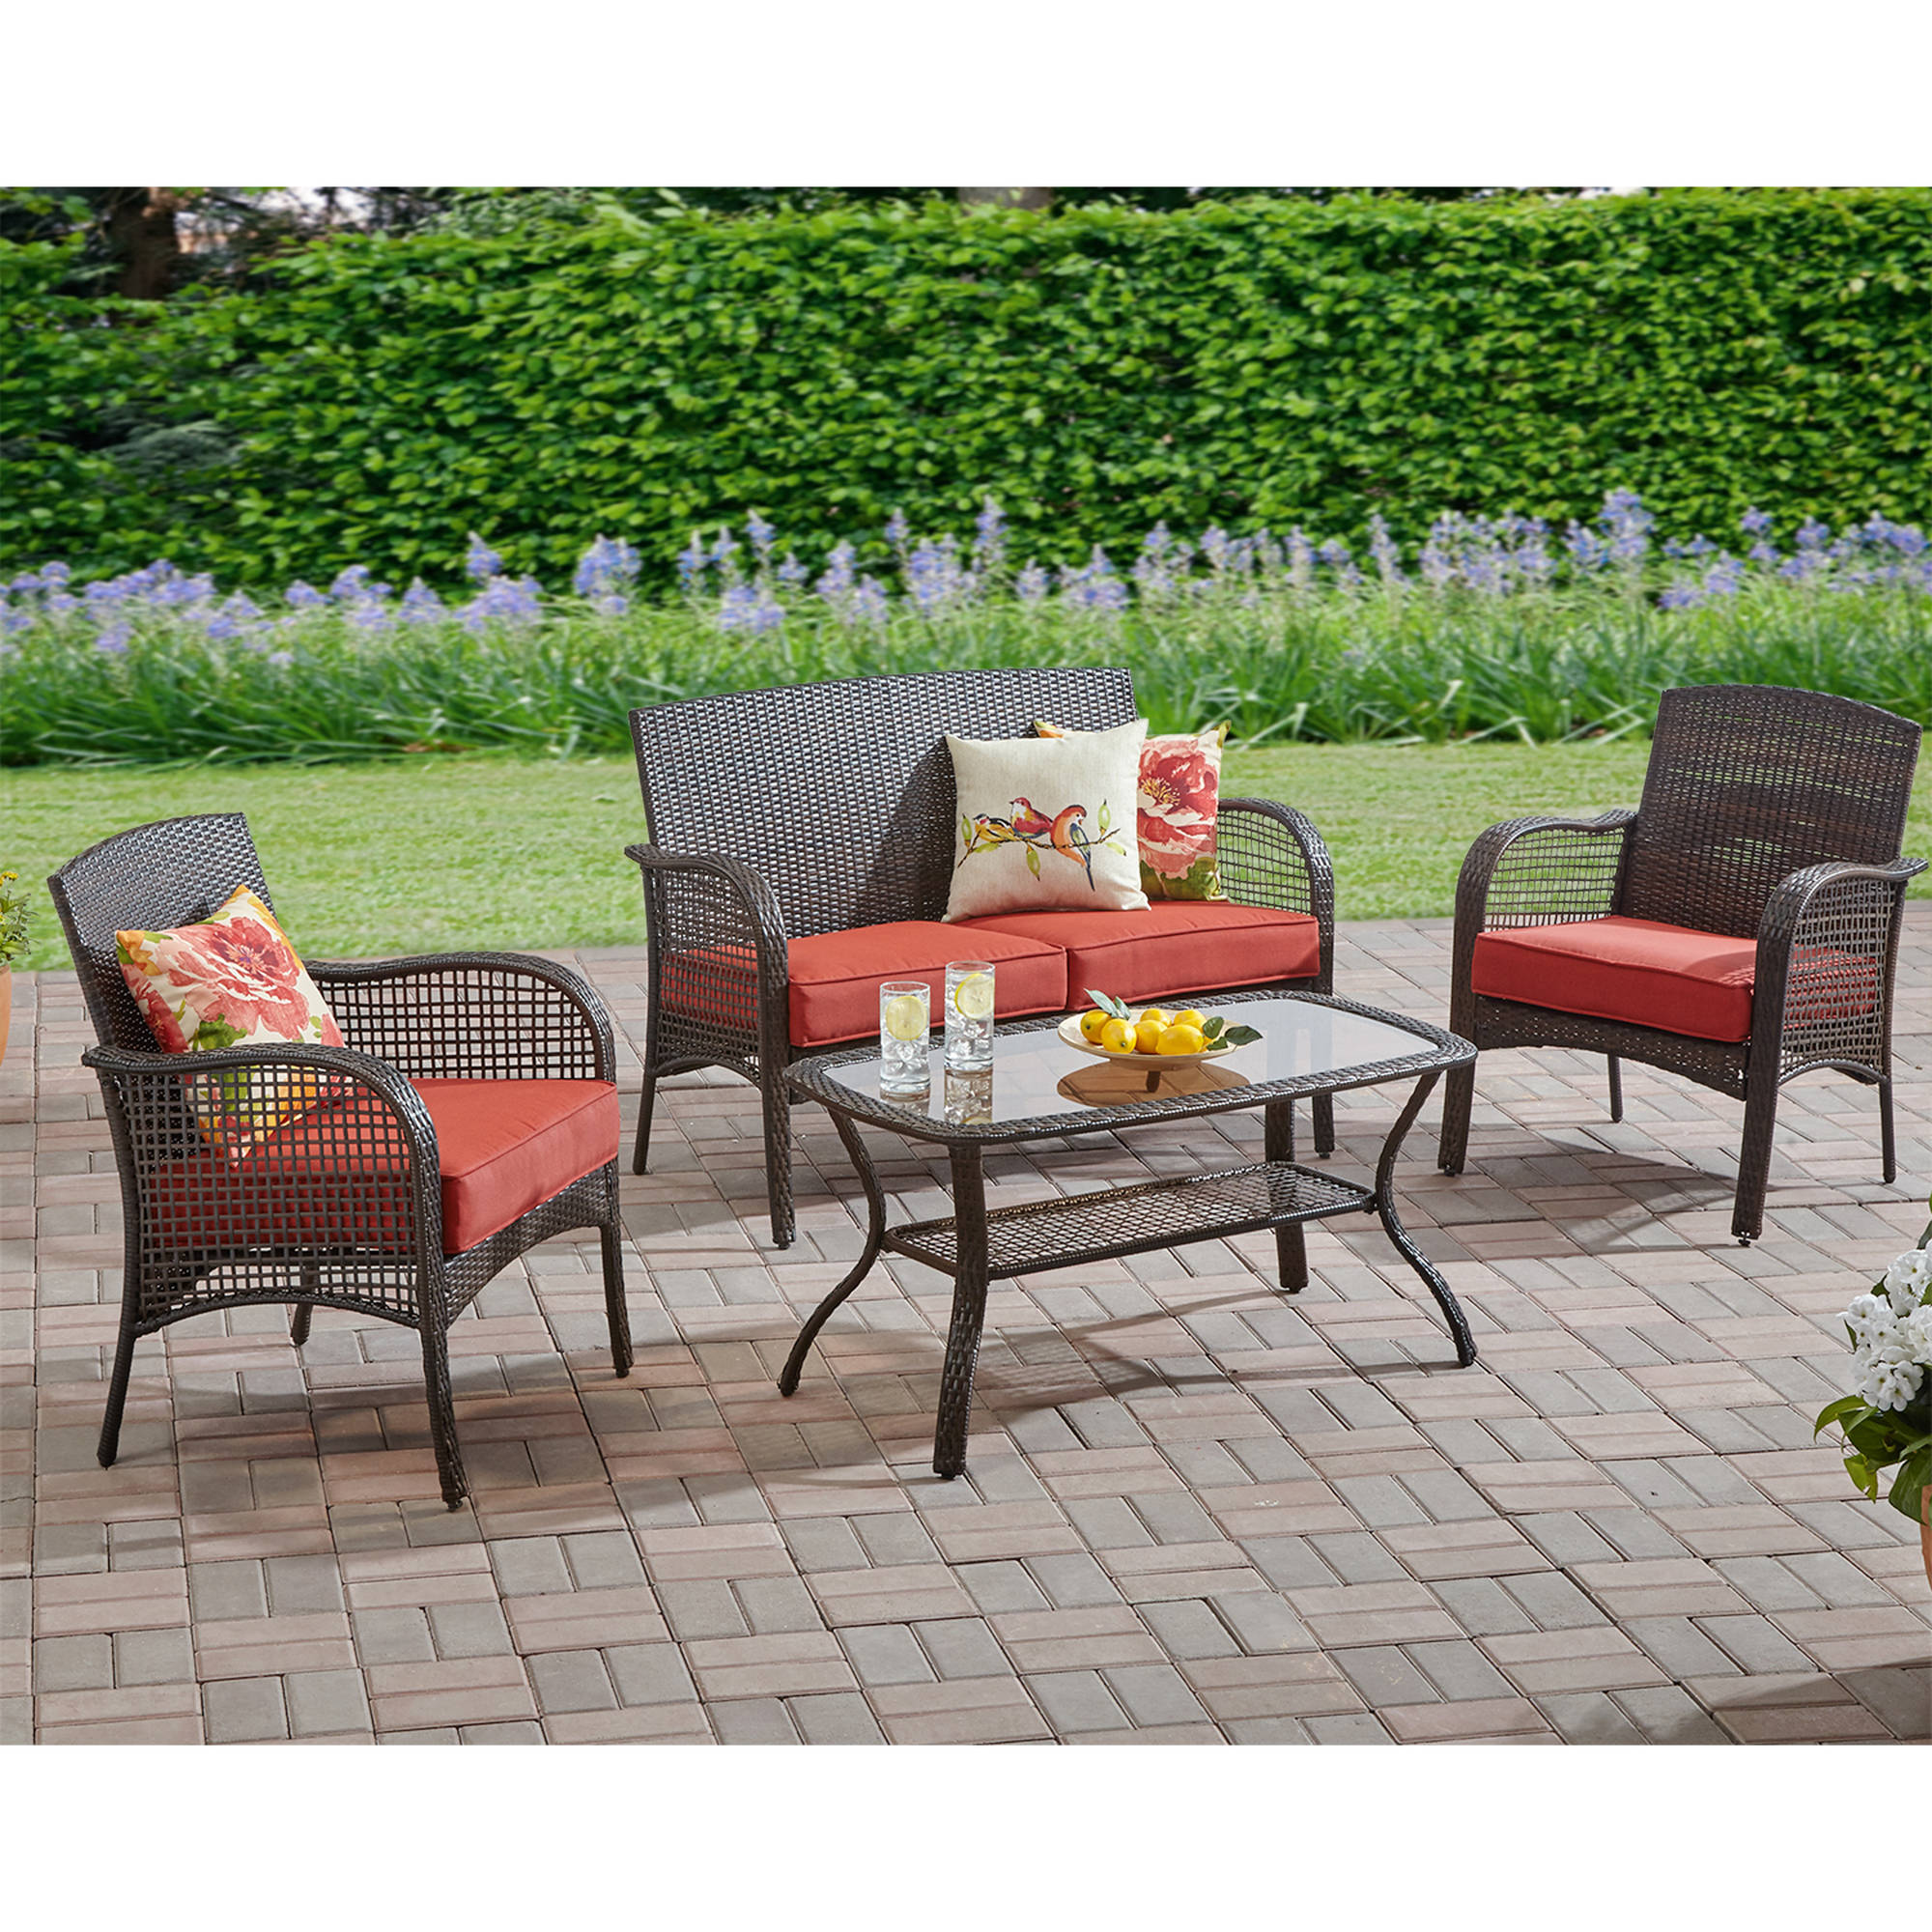 Mainstays cambridge park 4 piece outdoor conversation set for Outdoor furniture 4 piece